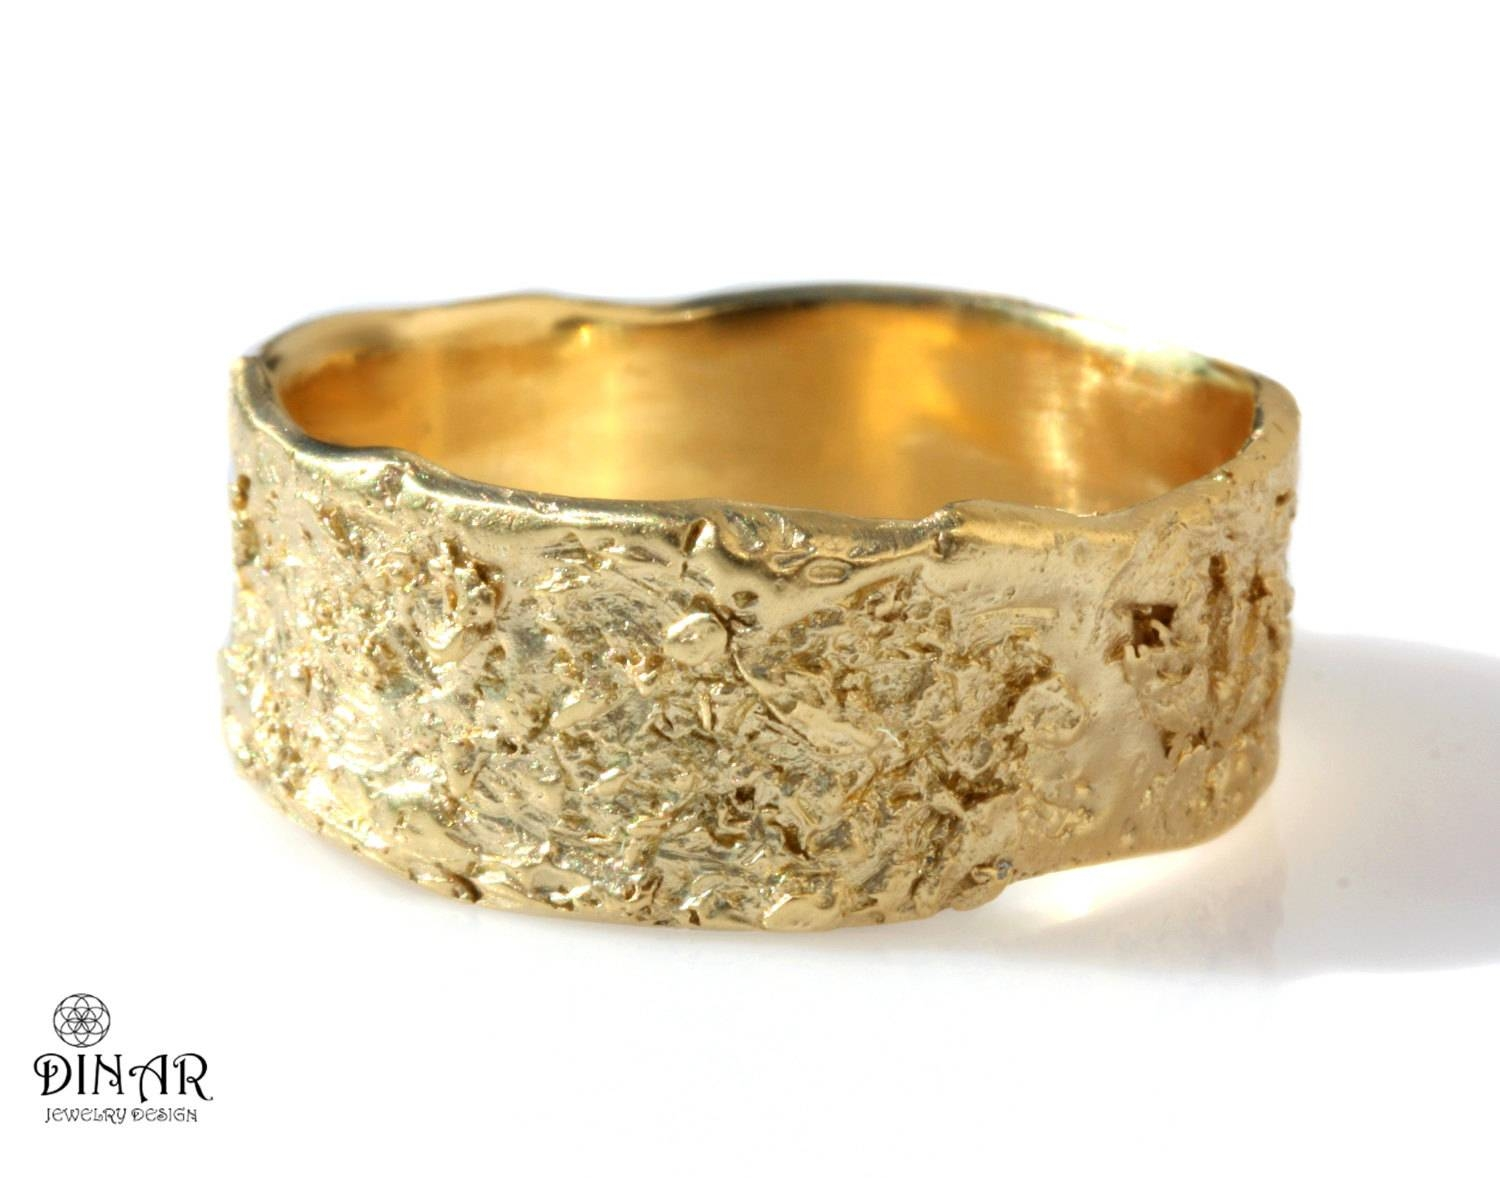 18K Wedding Band Rustic 14K Yellow Gold Ring Wide Band Regarding Women's Wide Wedding Bands (View 4 of 15)